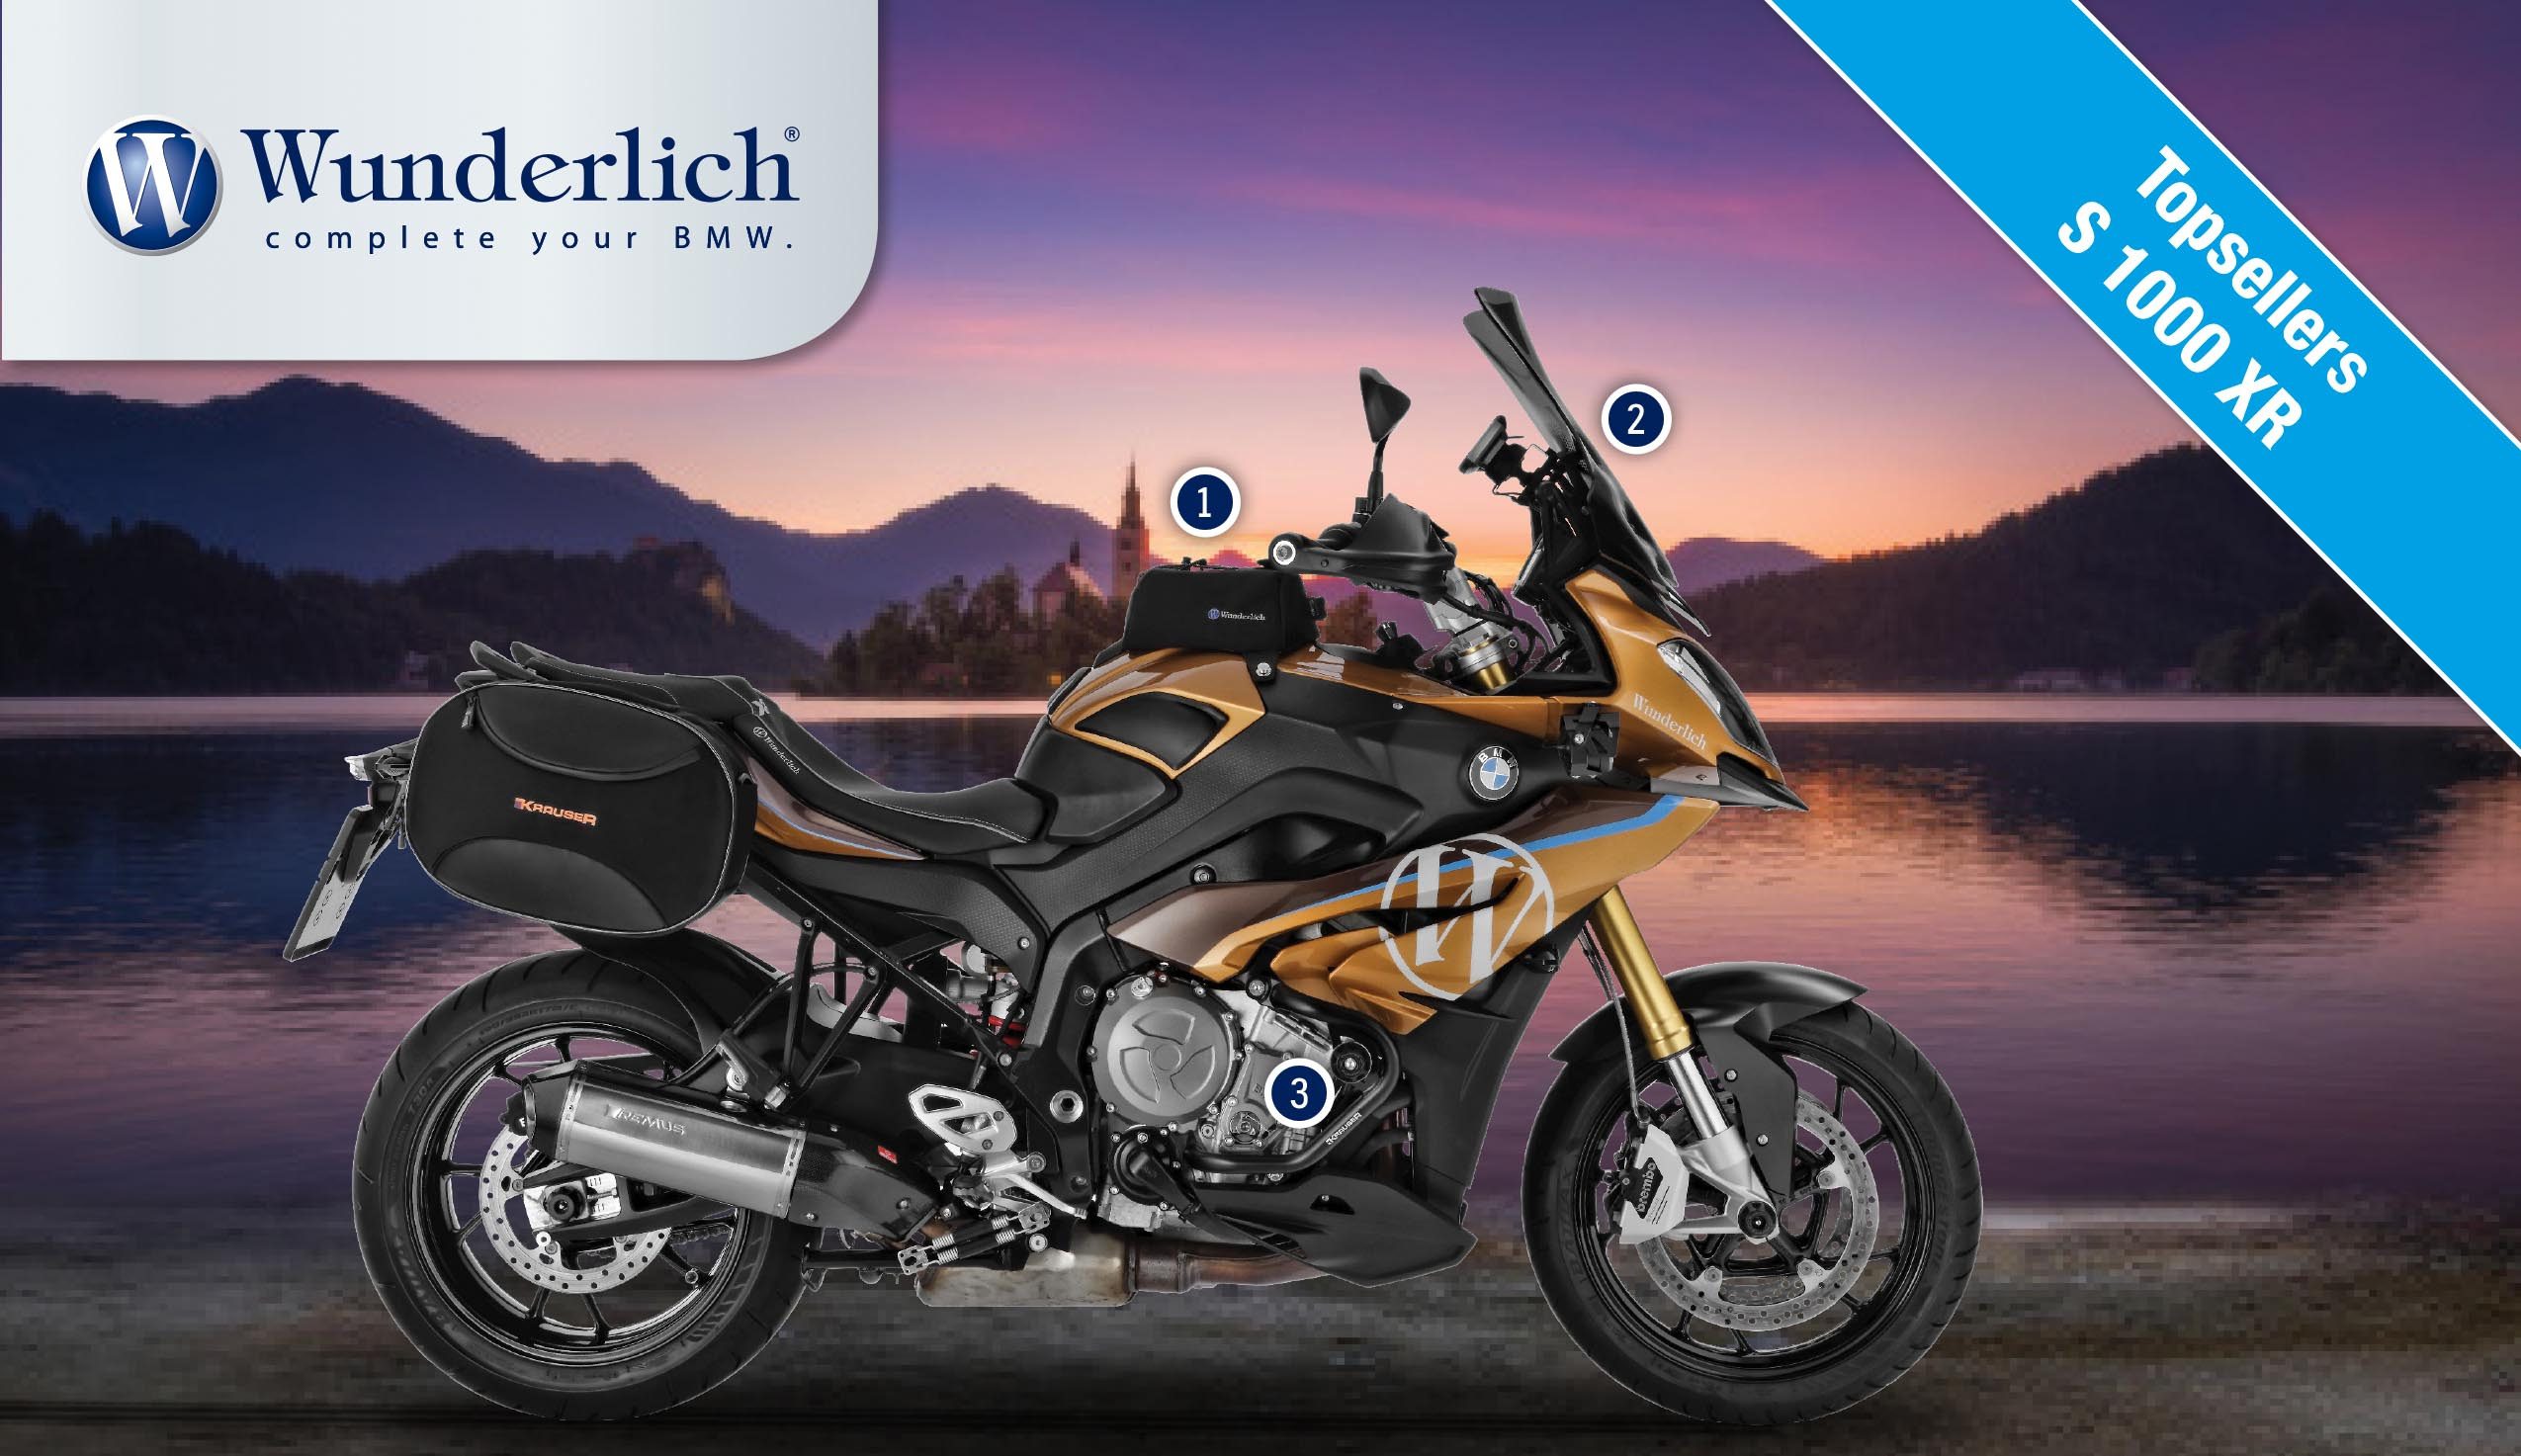 S 1000 XR Topsellers Buyer's Guide S1000 XR